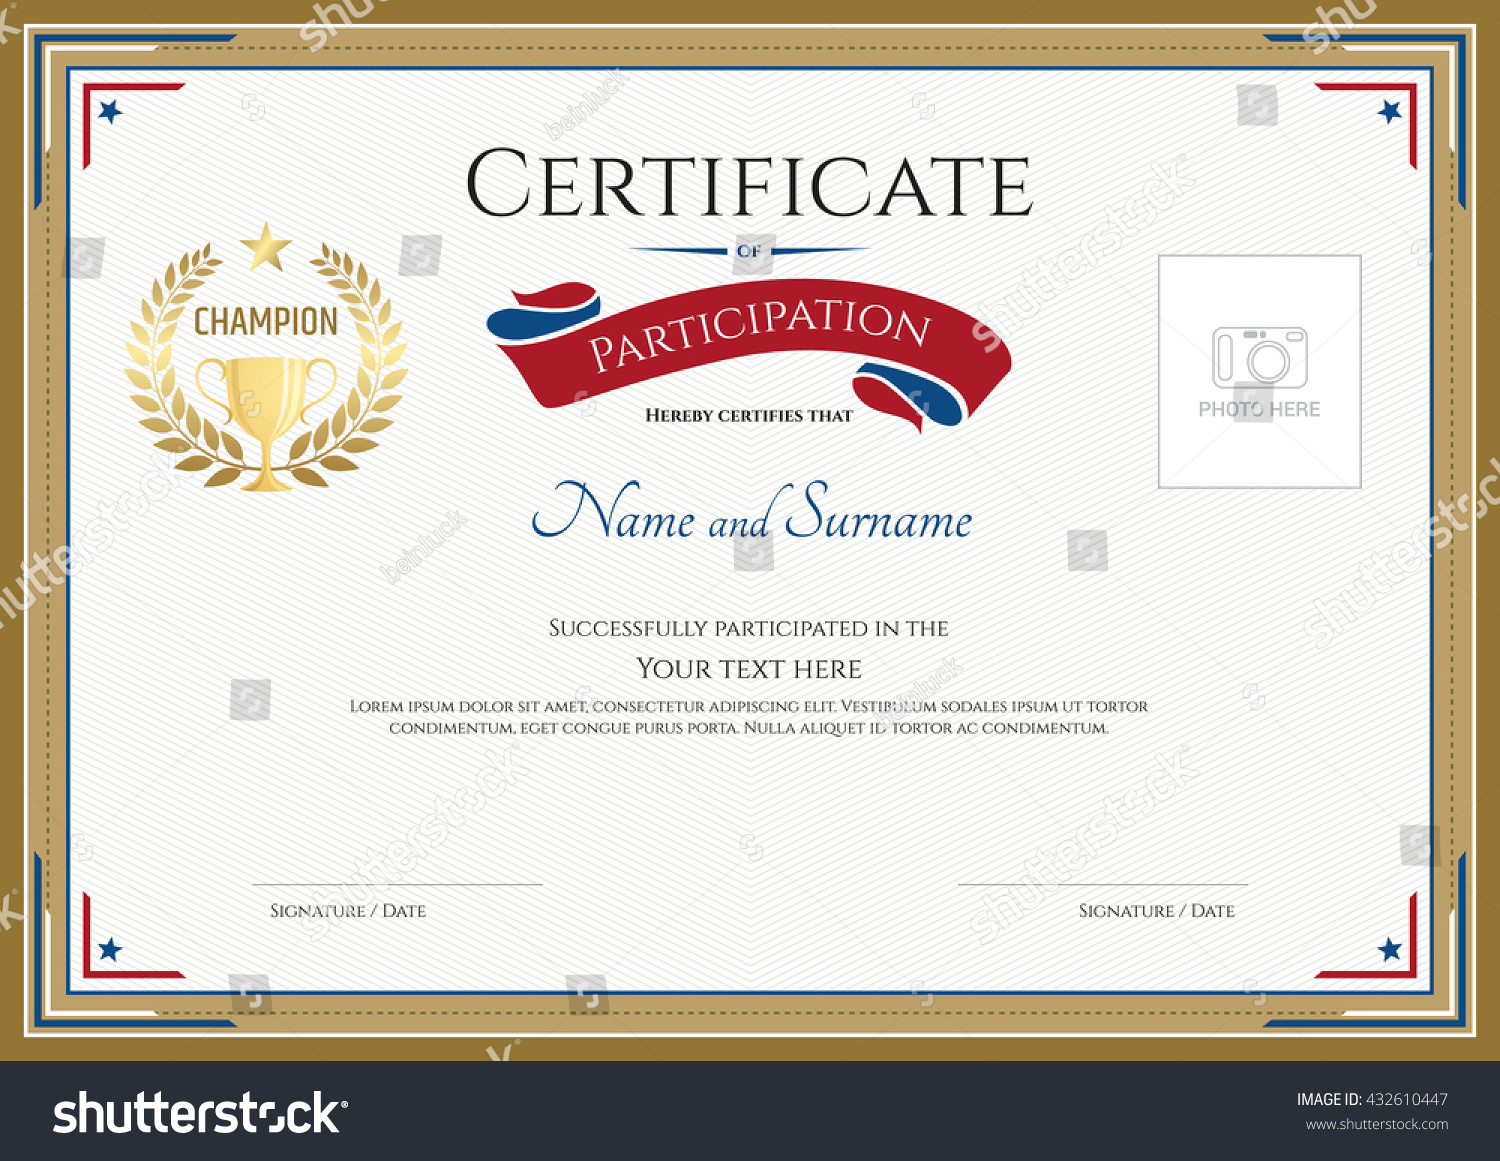 free templates for certificates of participation - certificate participation template gold border gold stock